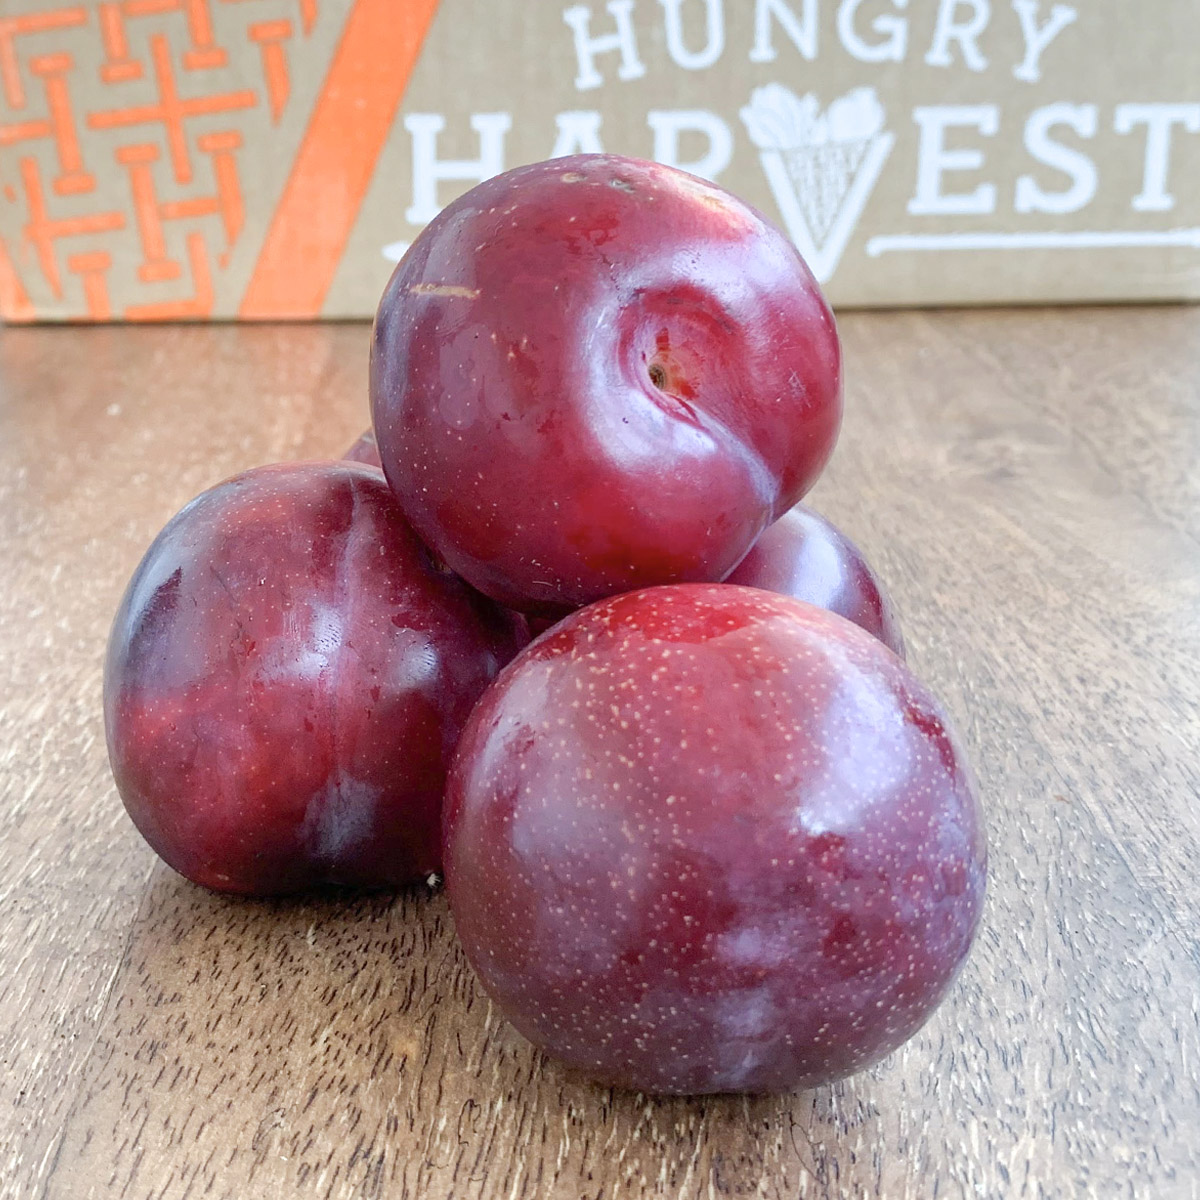 Honey Glazed Plums with Almonds and Creme FraicheThe perfect summer dessert flavor combination. - Find the recipe at: My Recipes